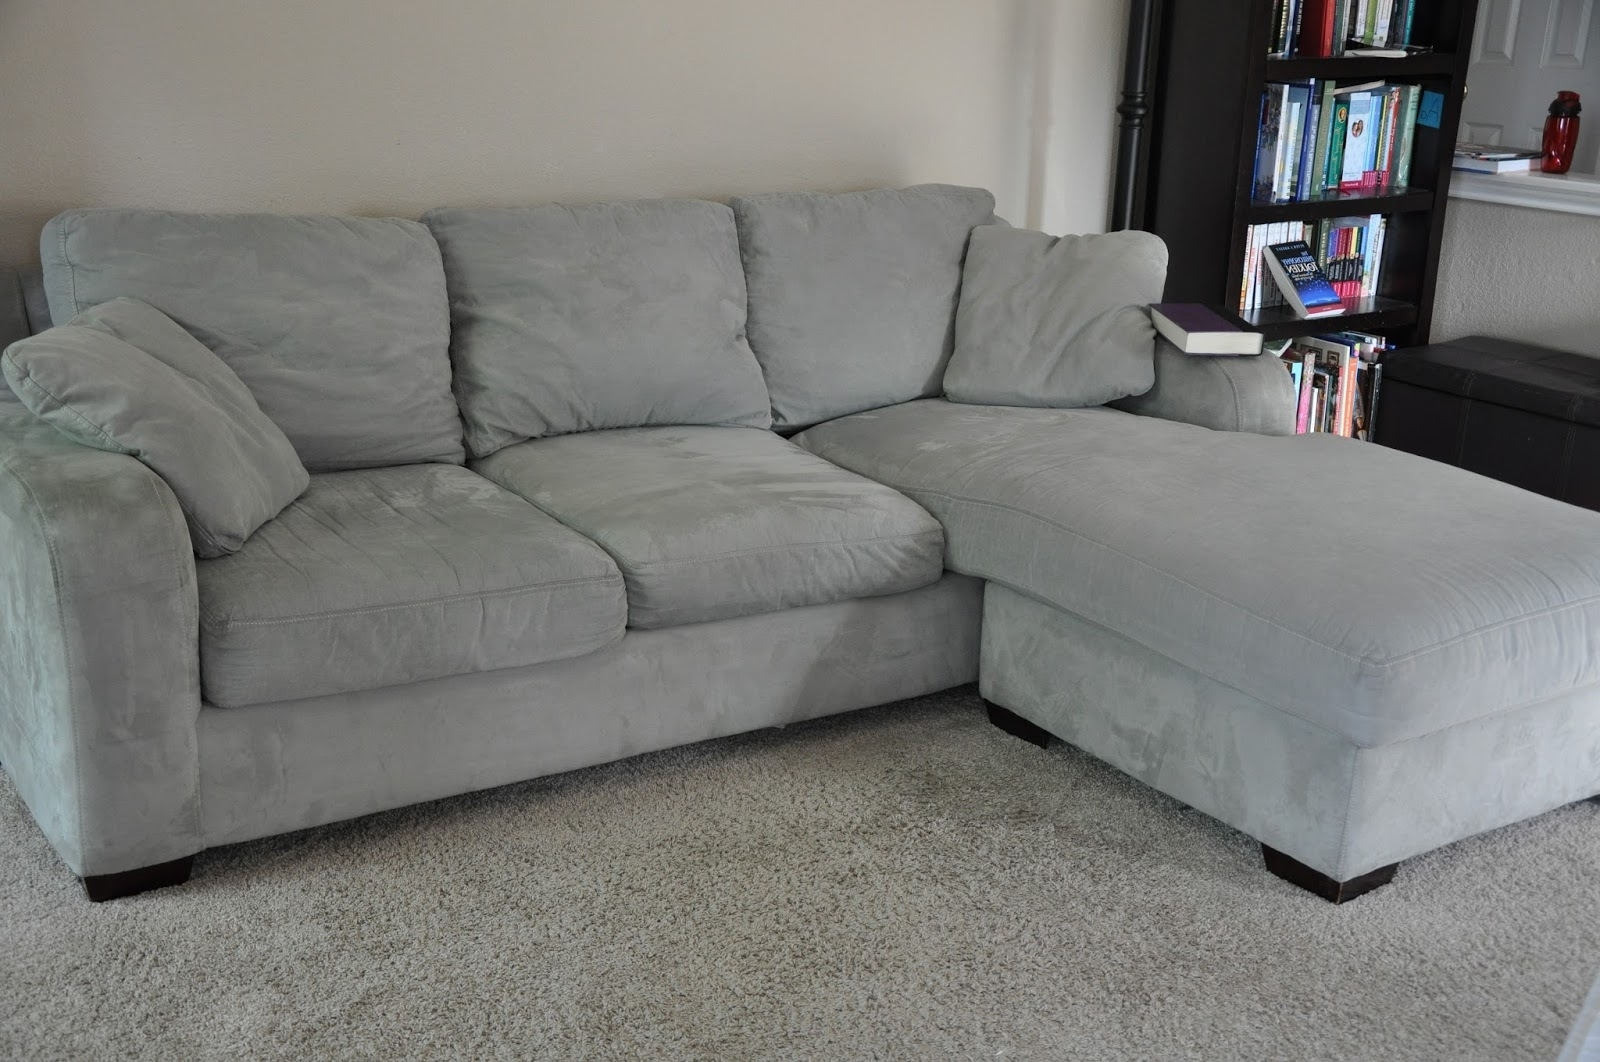 Fashionable Interior: Circle Sofa Chair And Overstuffed Couches Regarding Overstuffed Sofas And Chairs (View 11 of 20)